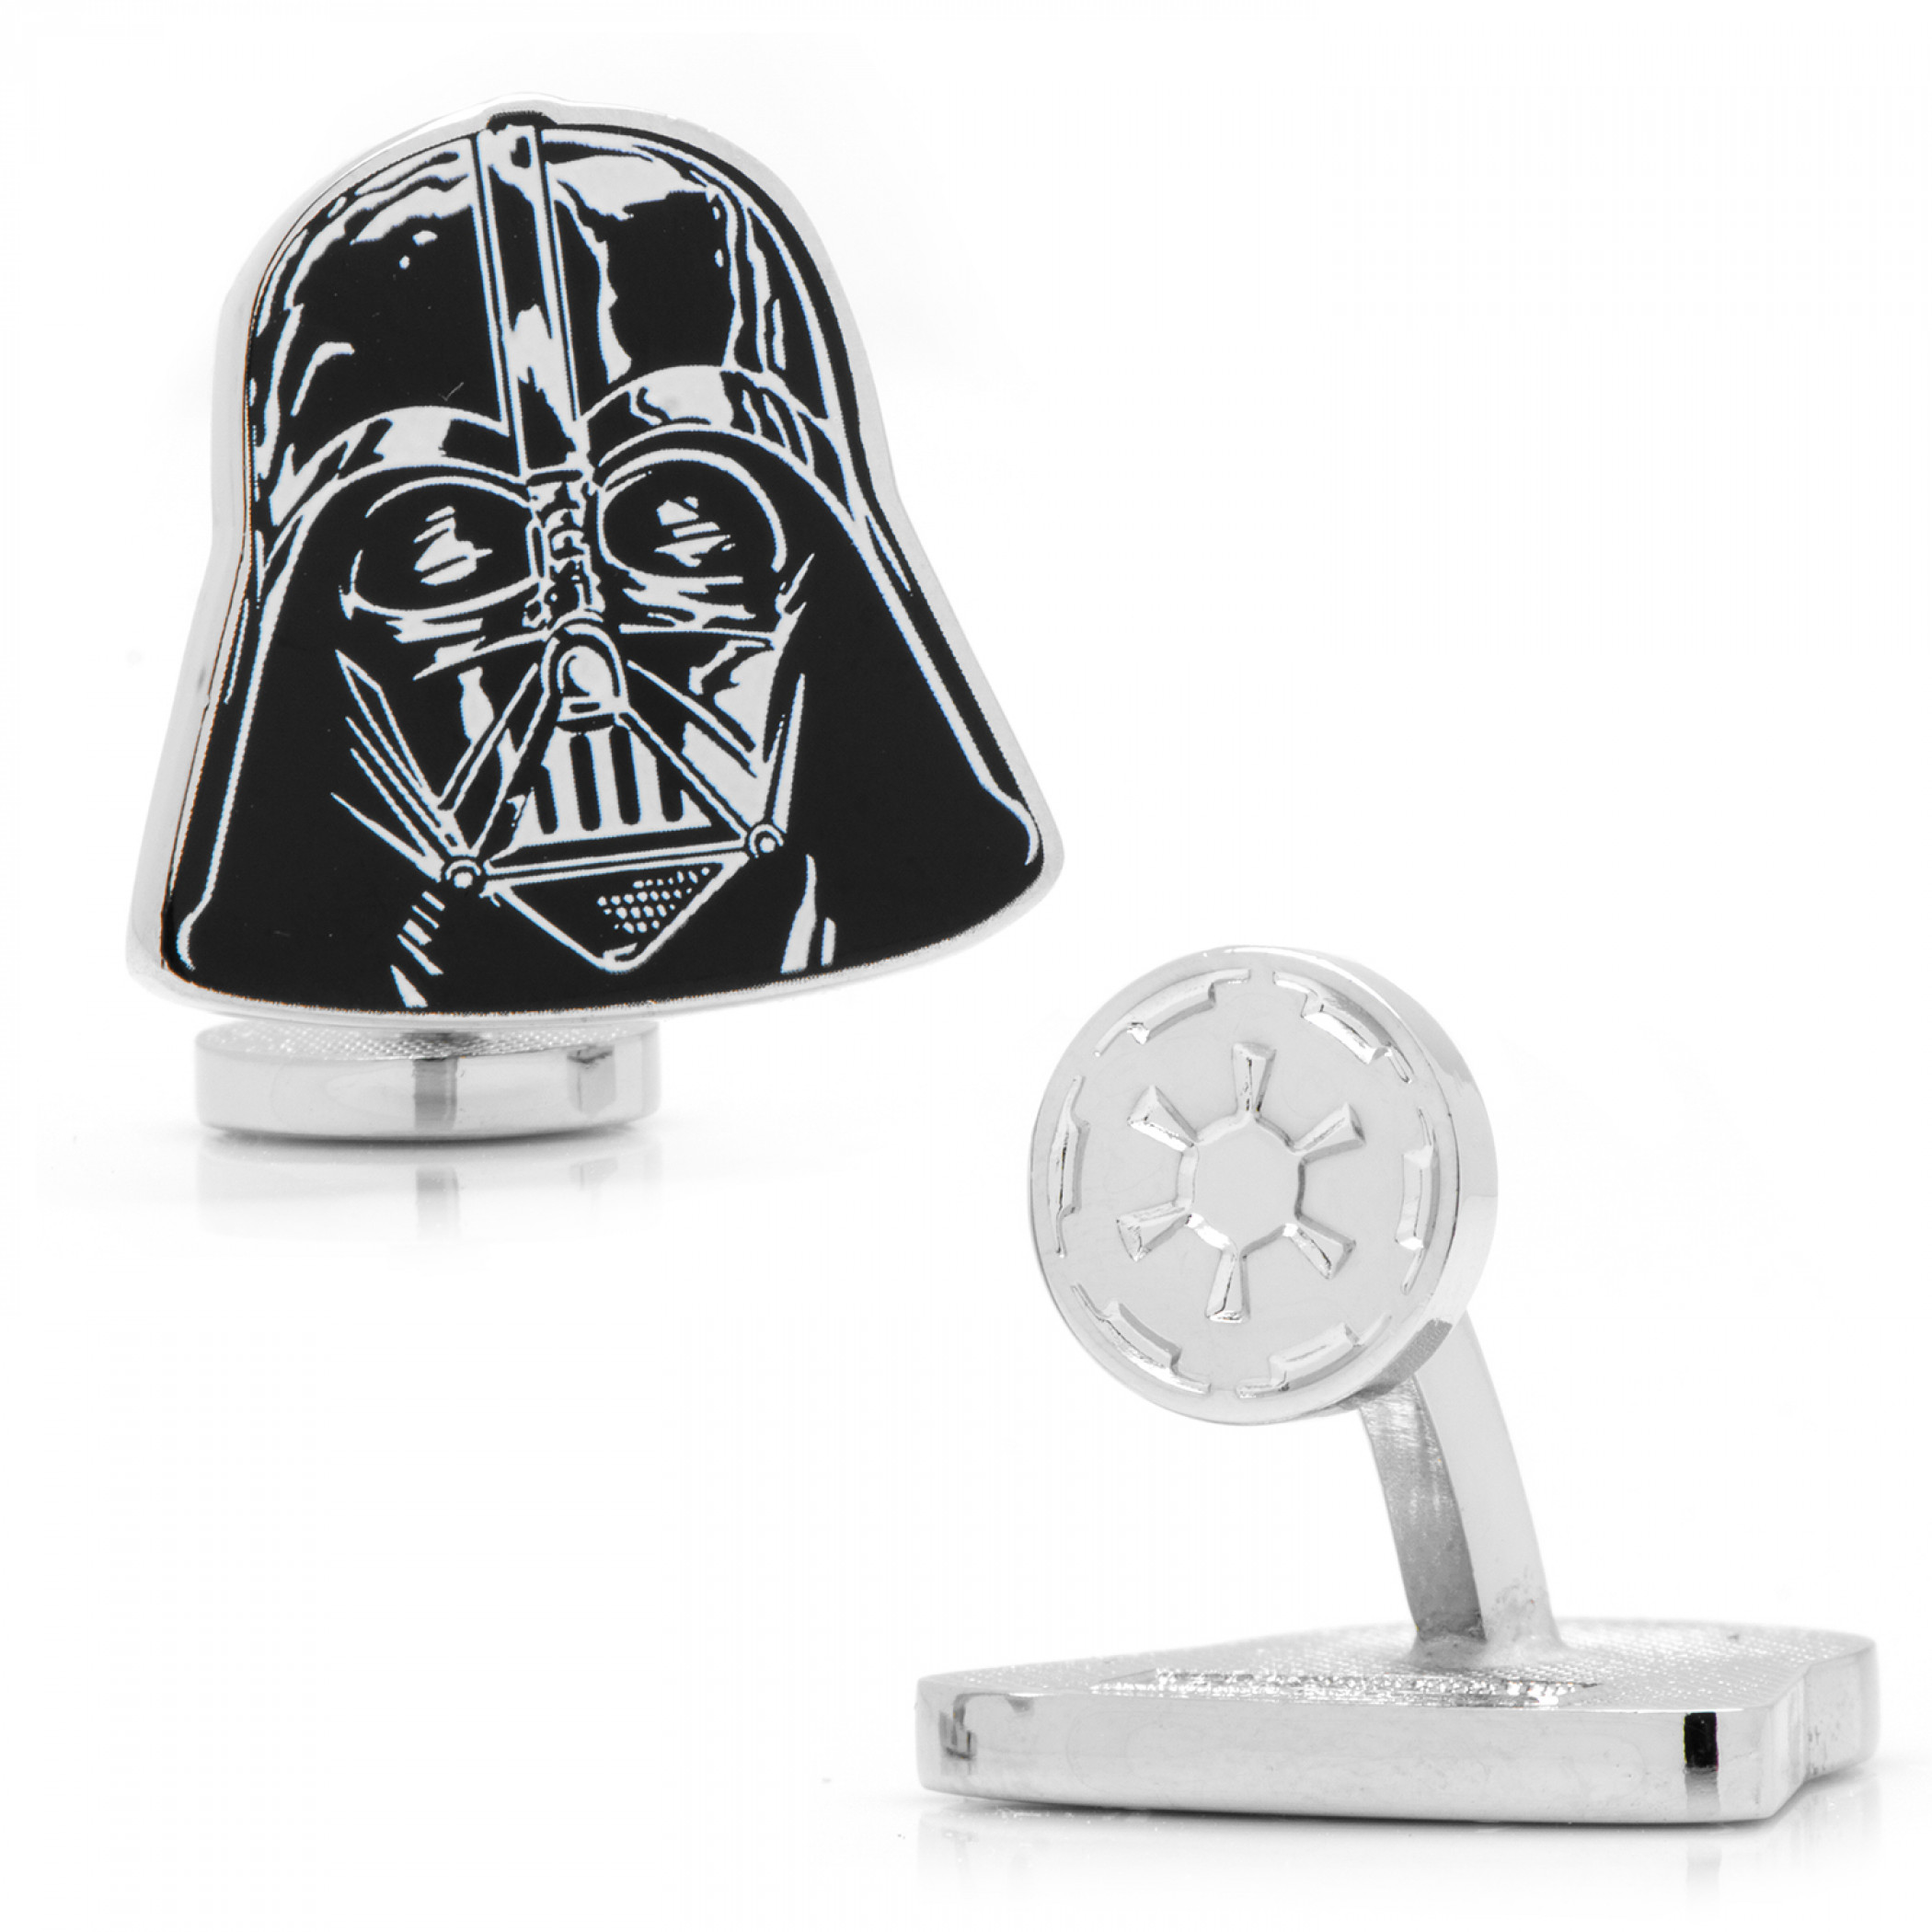 Star Wars Darth Vader Helmet Cufflinks